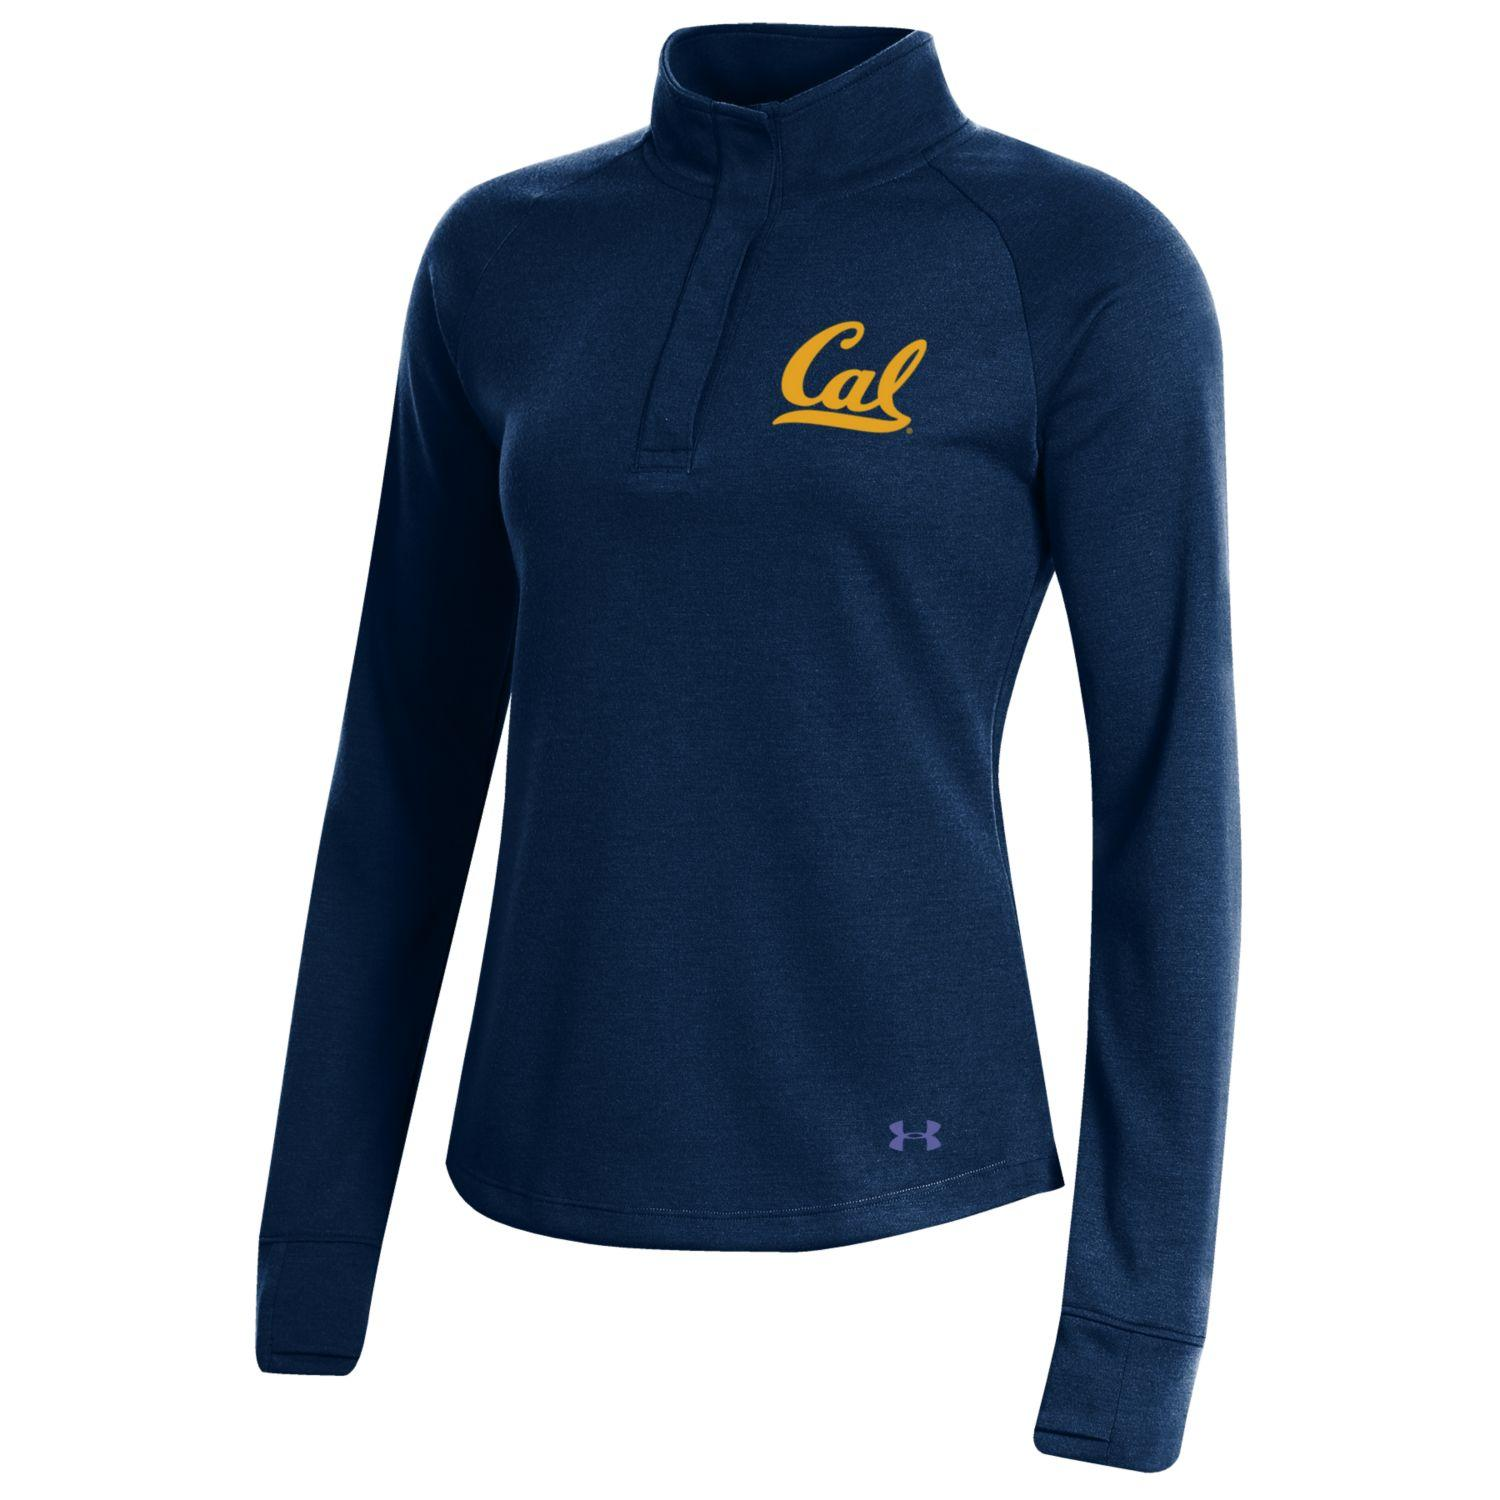 UA W Double Knit 1/4 Snap 'Cal'